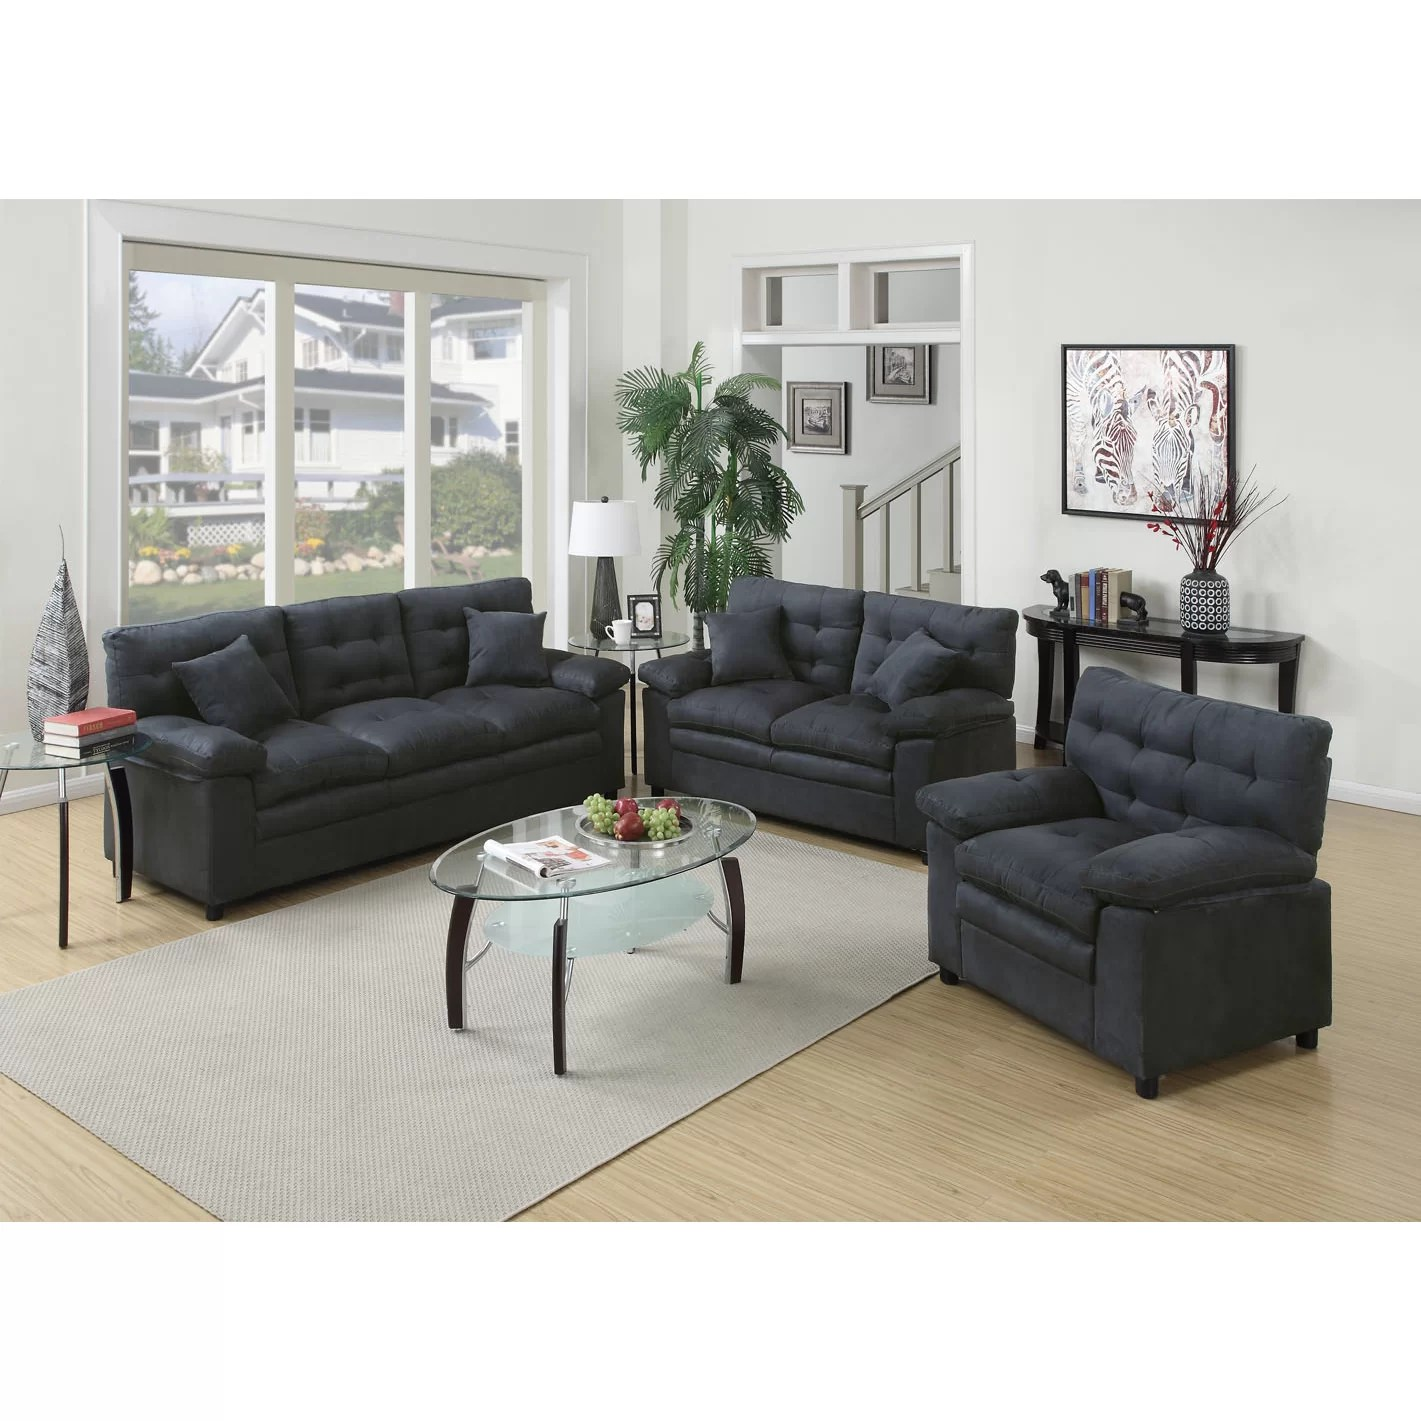 3 piece toddler sofa set redesign poundex bobkona colona living room and reviews